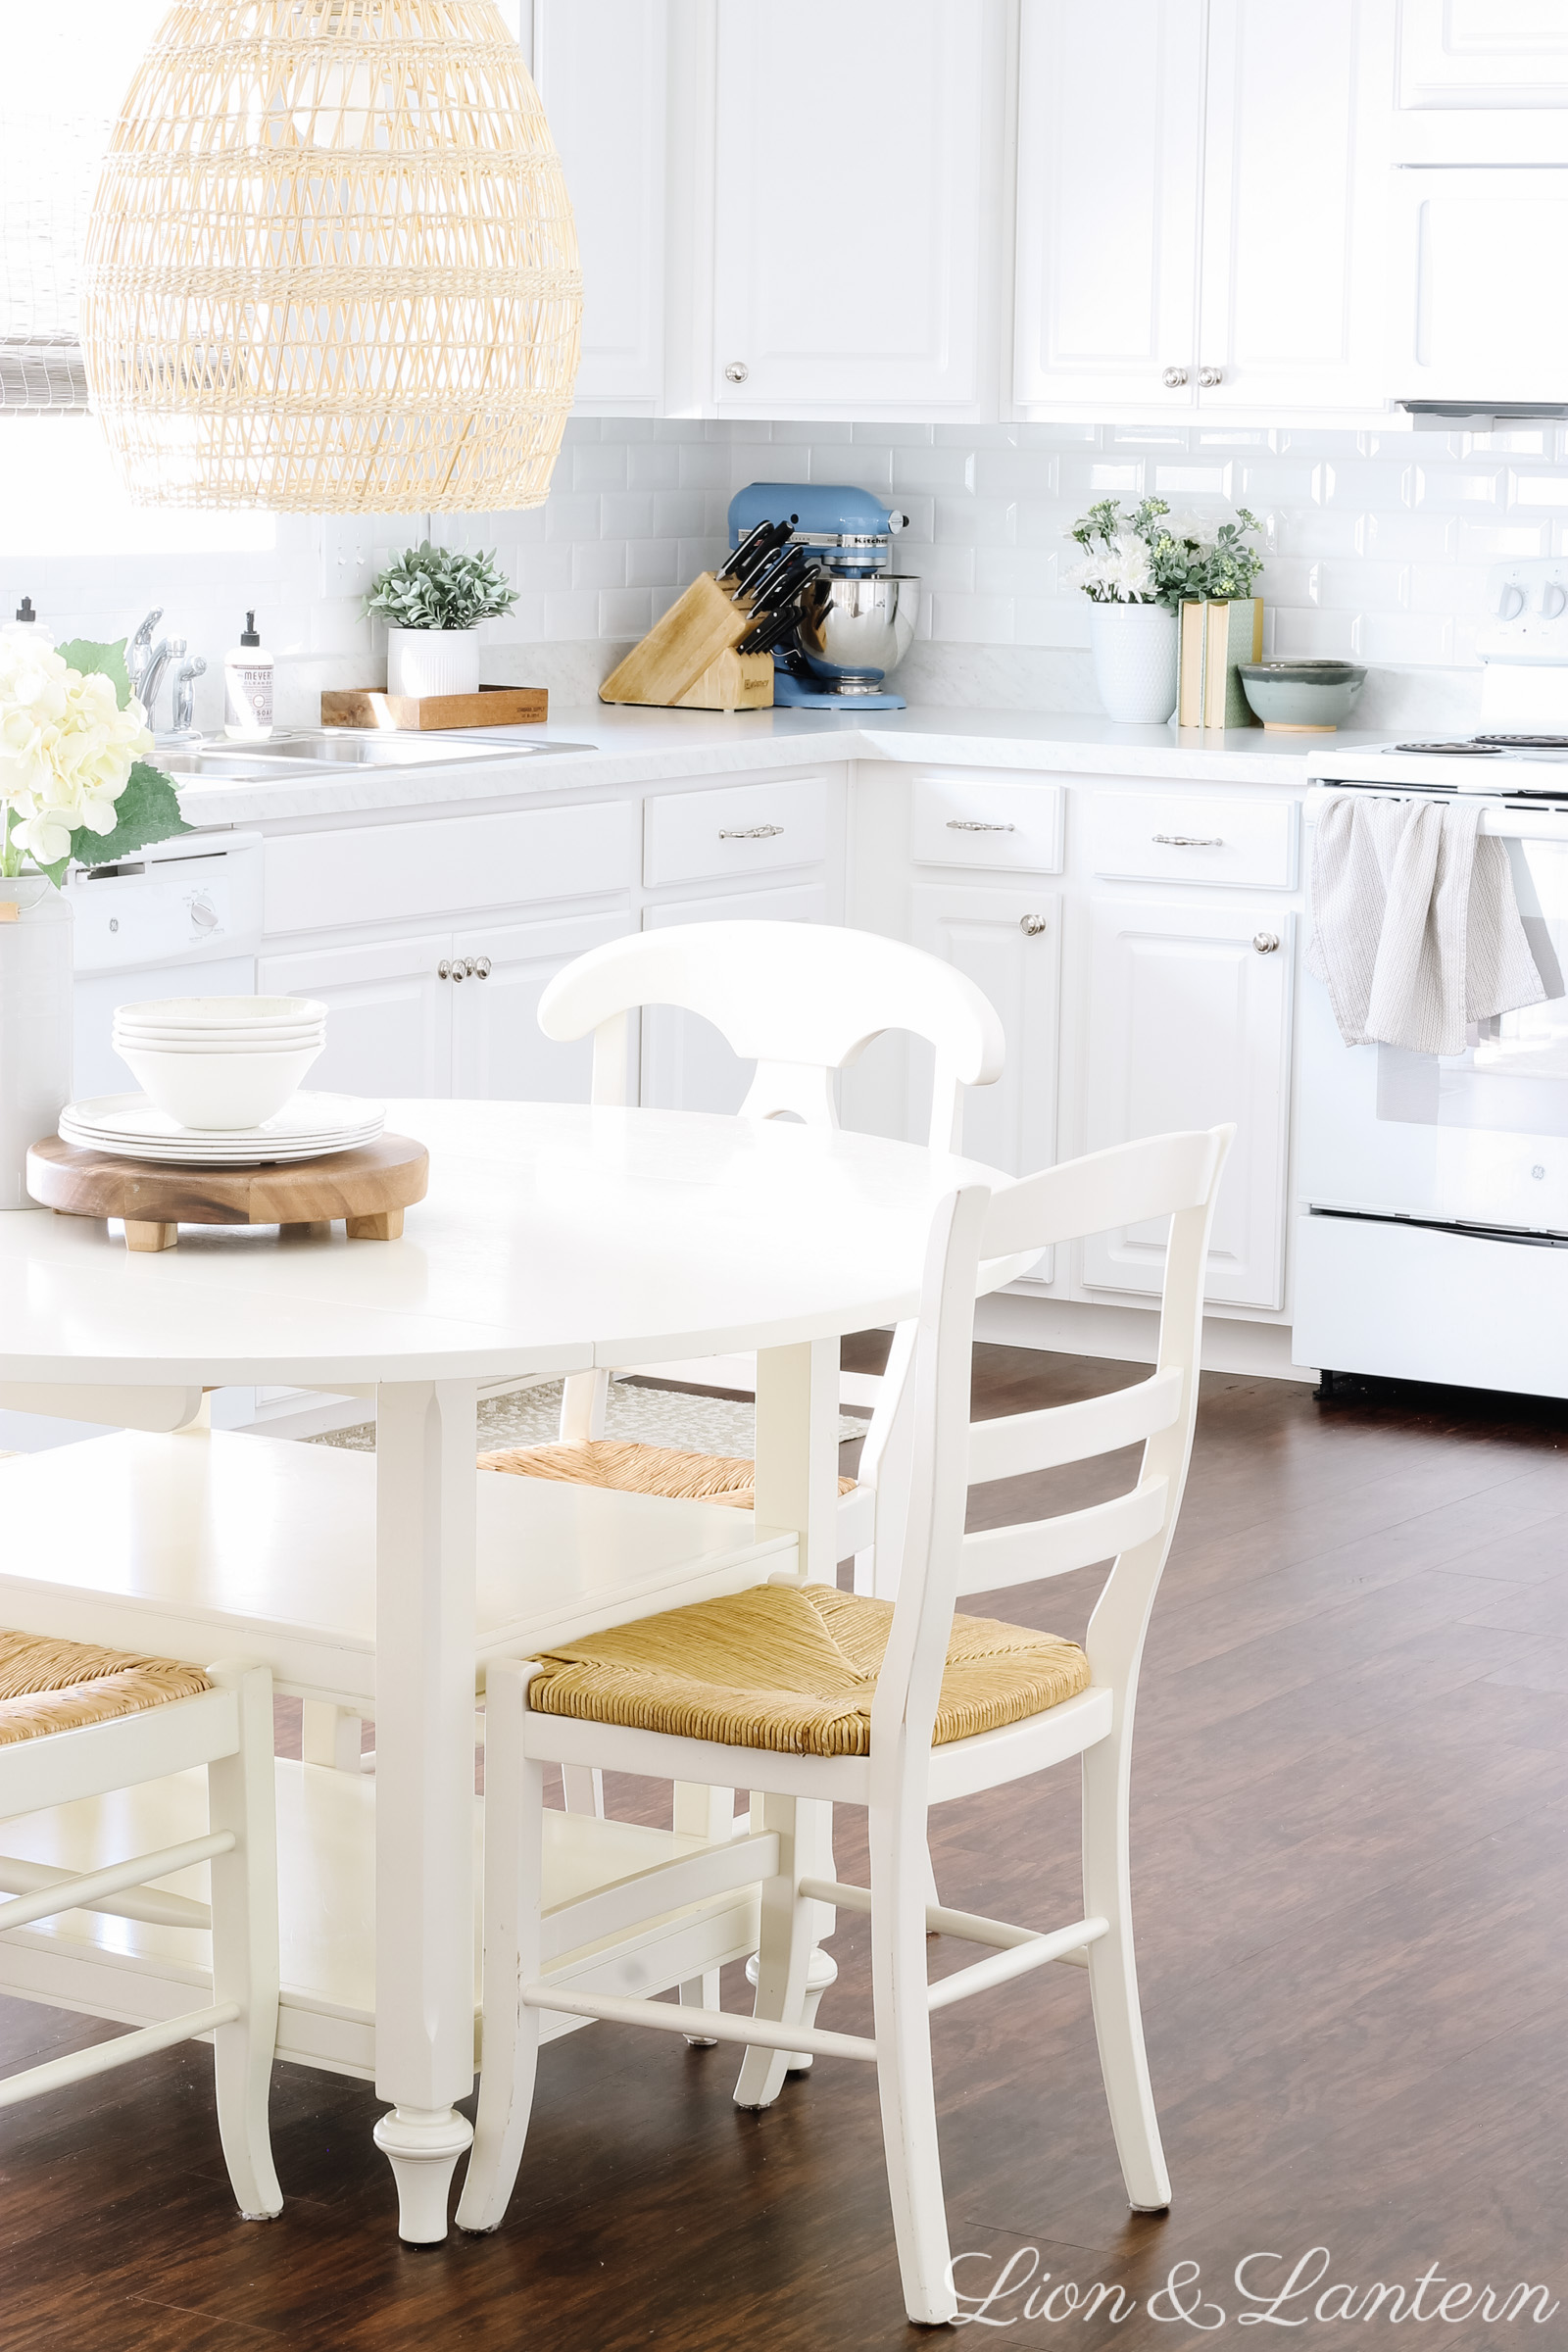 White Kitchen Tips: Adding Character on a Budget at LionAndLantern.com | vintage kitchen decor, round white dining table, woven pendant, white subway tile, budget decorating, neutral kitchen